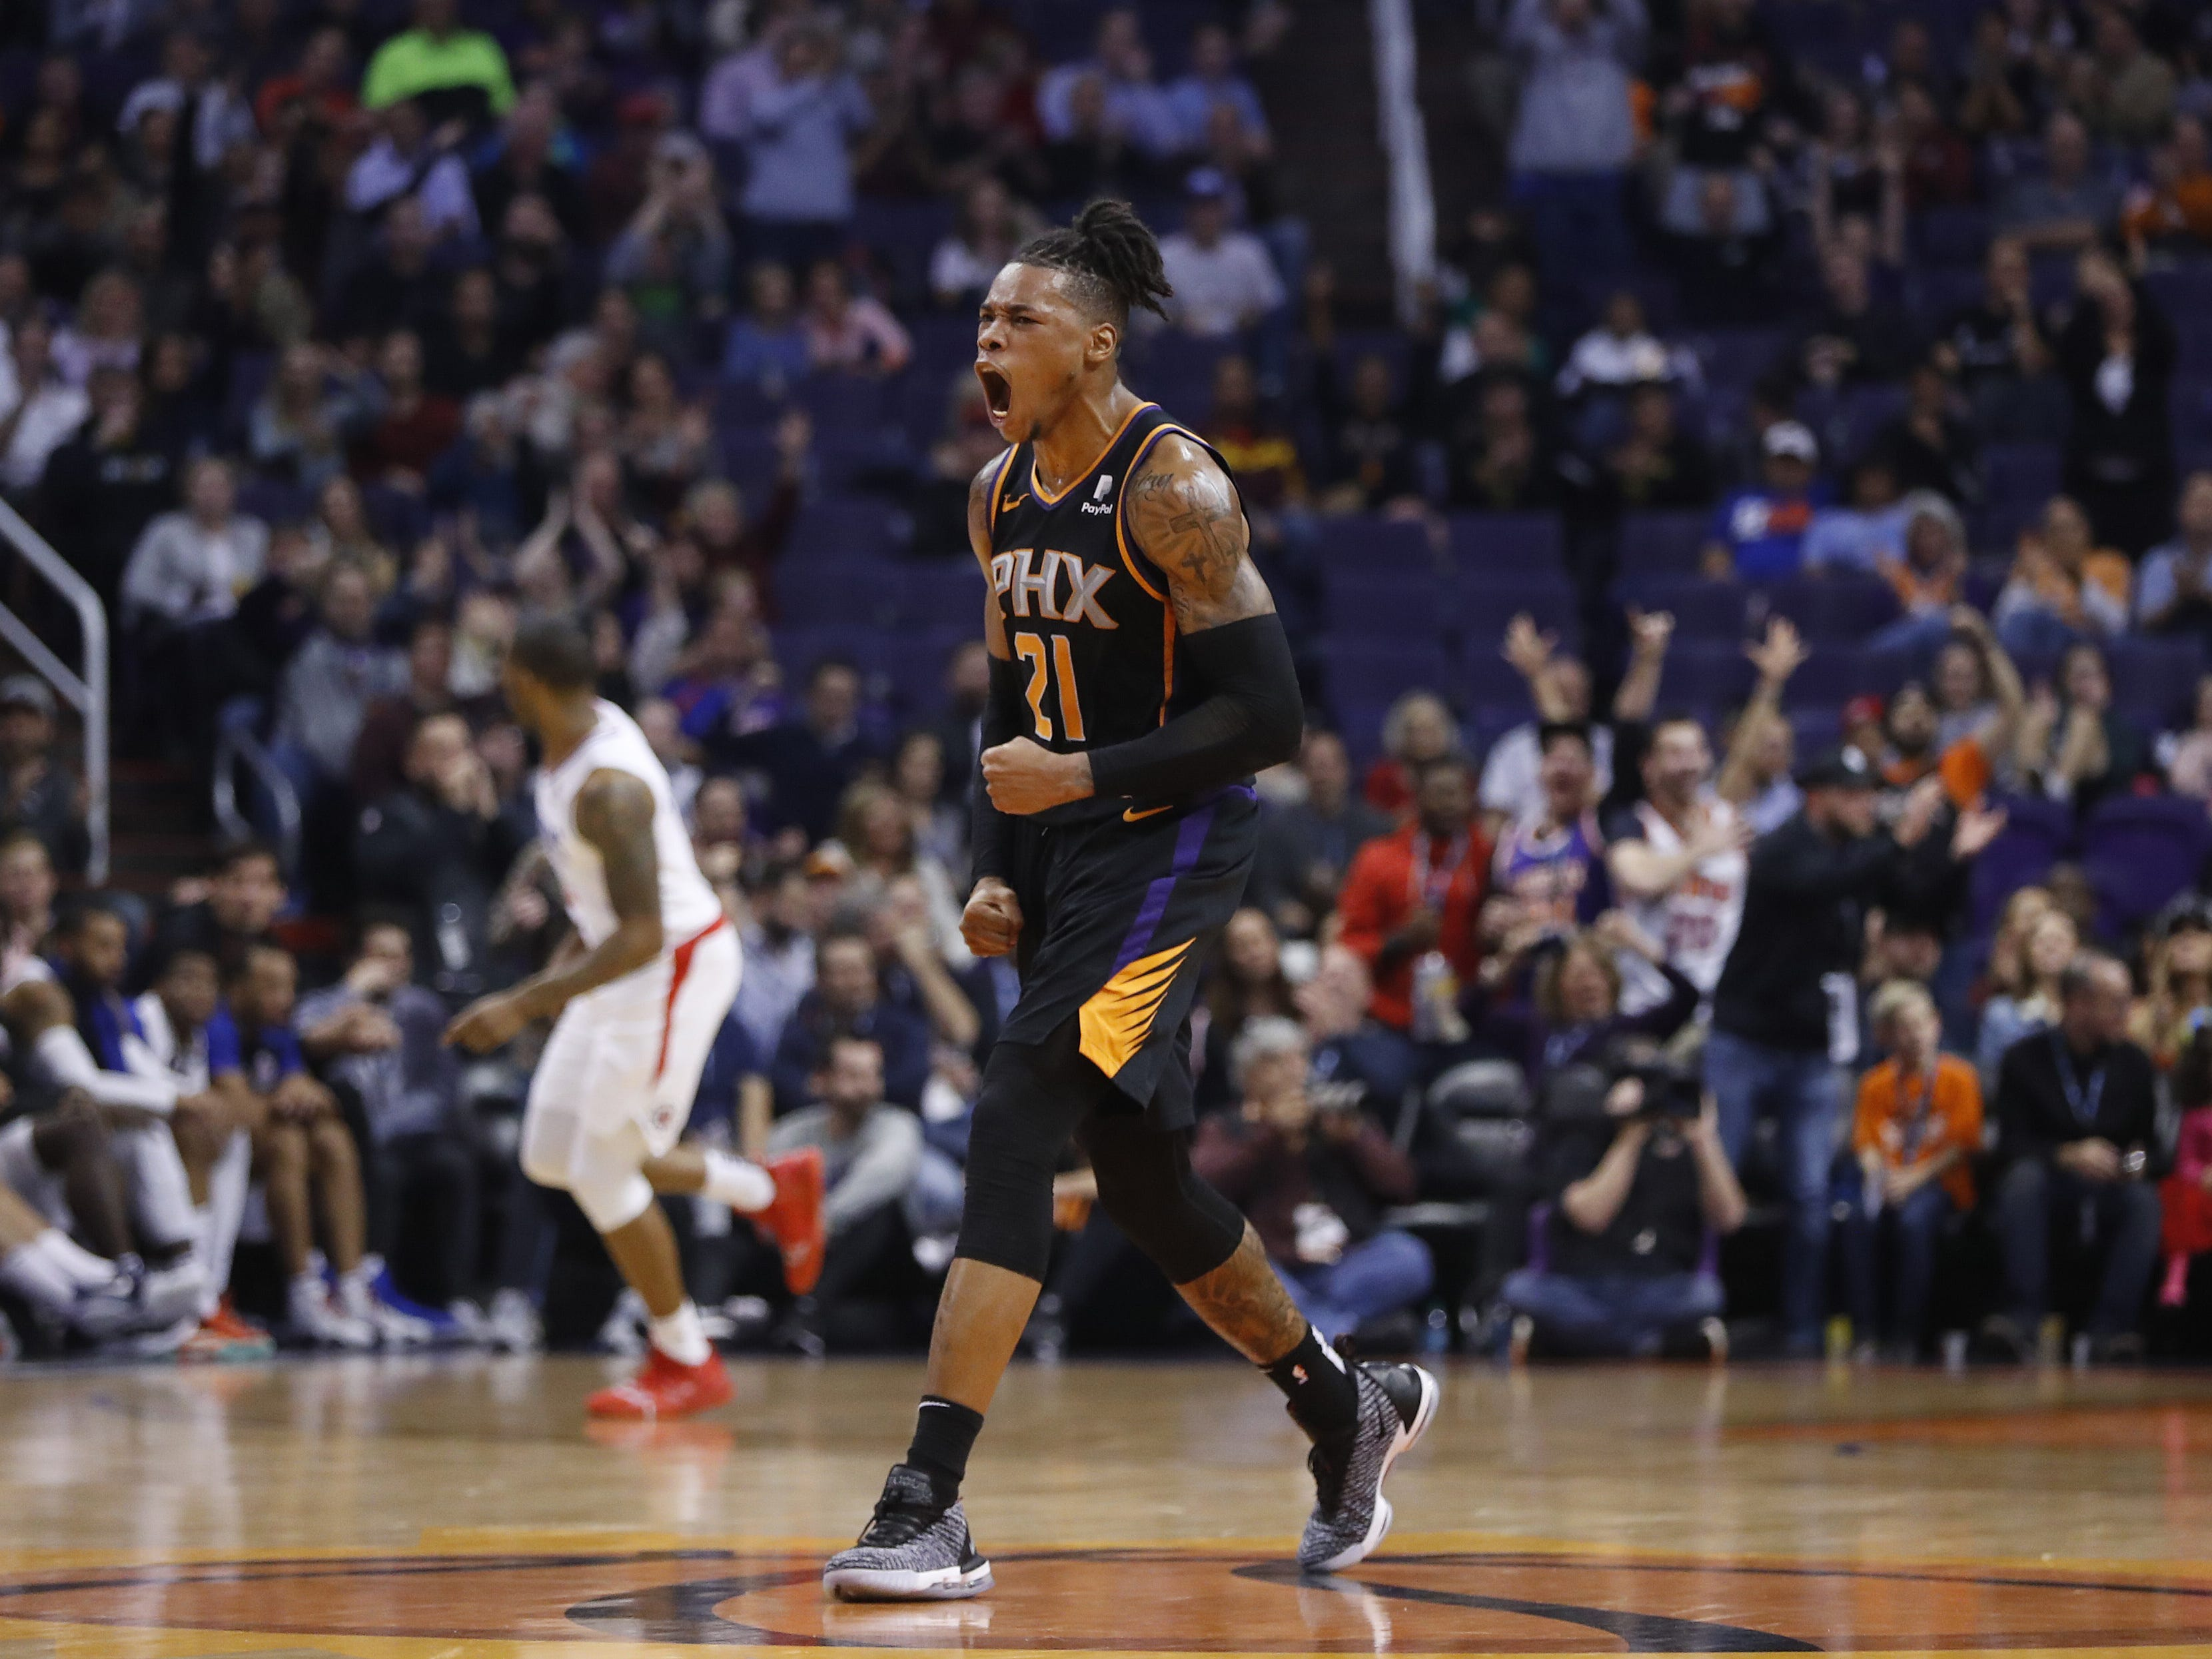 Suns' Richaun Holmes (21) reacts after the Suns pull within 13 against the Clippers during the second half at Talking Stick Resort Arena in Phoenix, Ariz. on January 4, 2019.